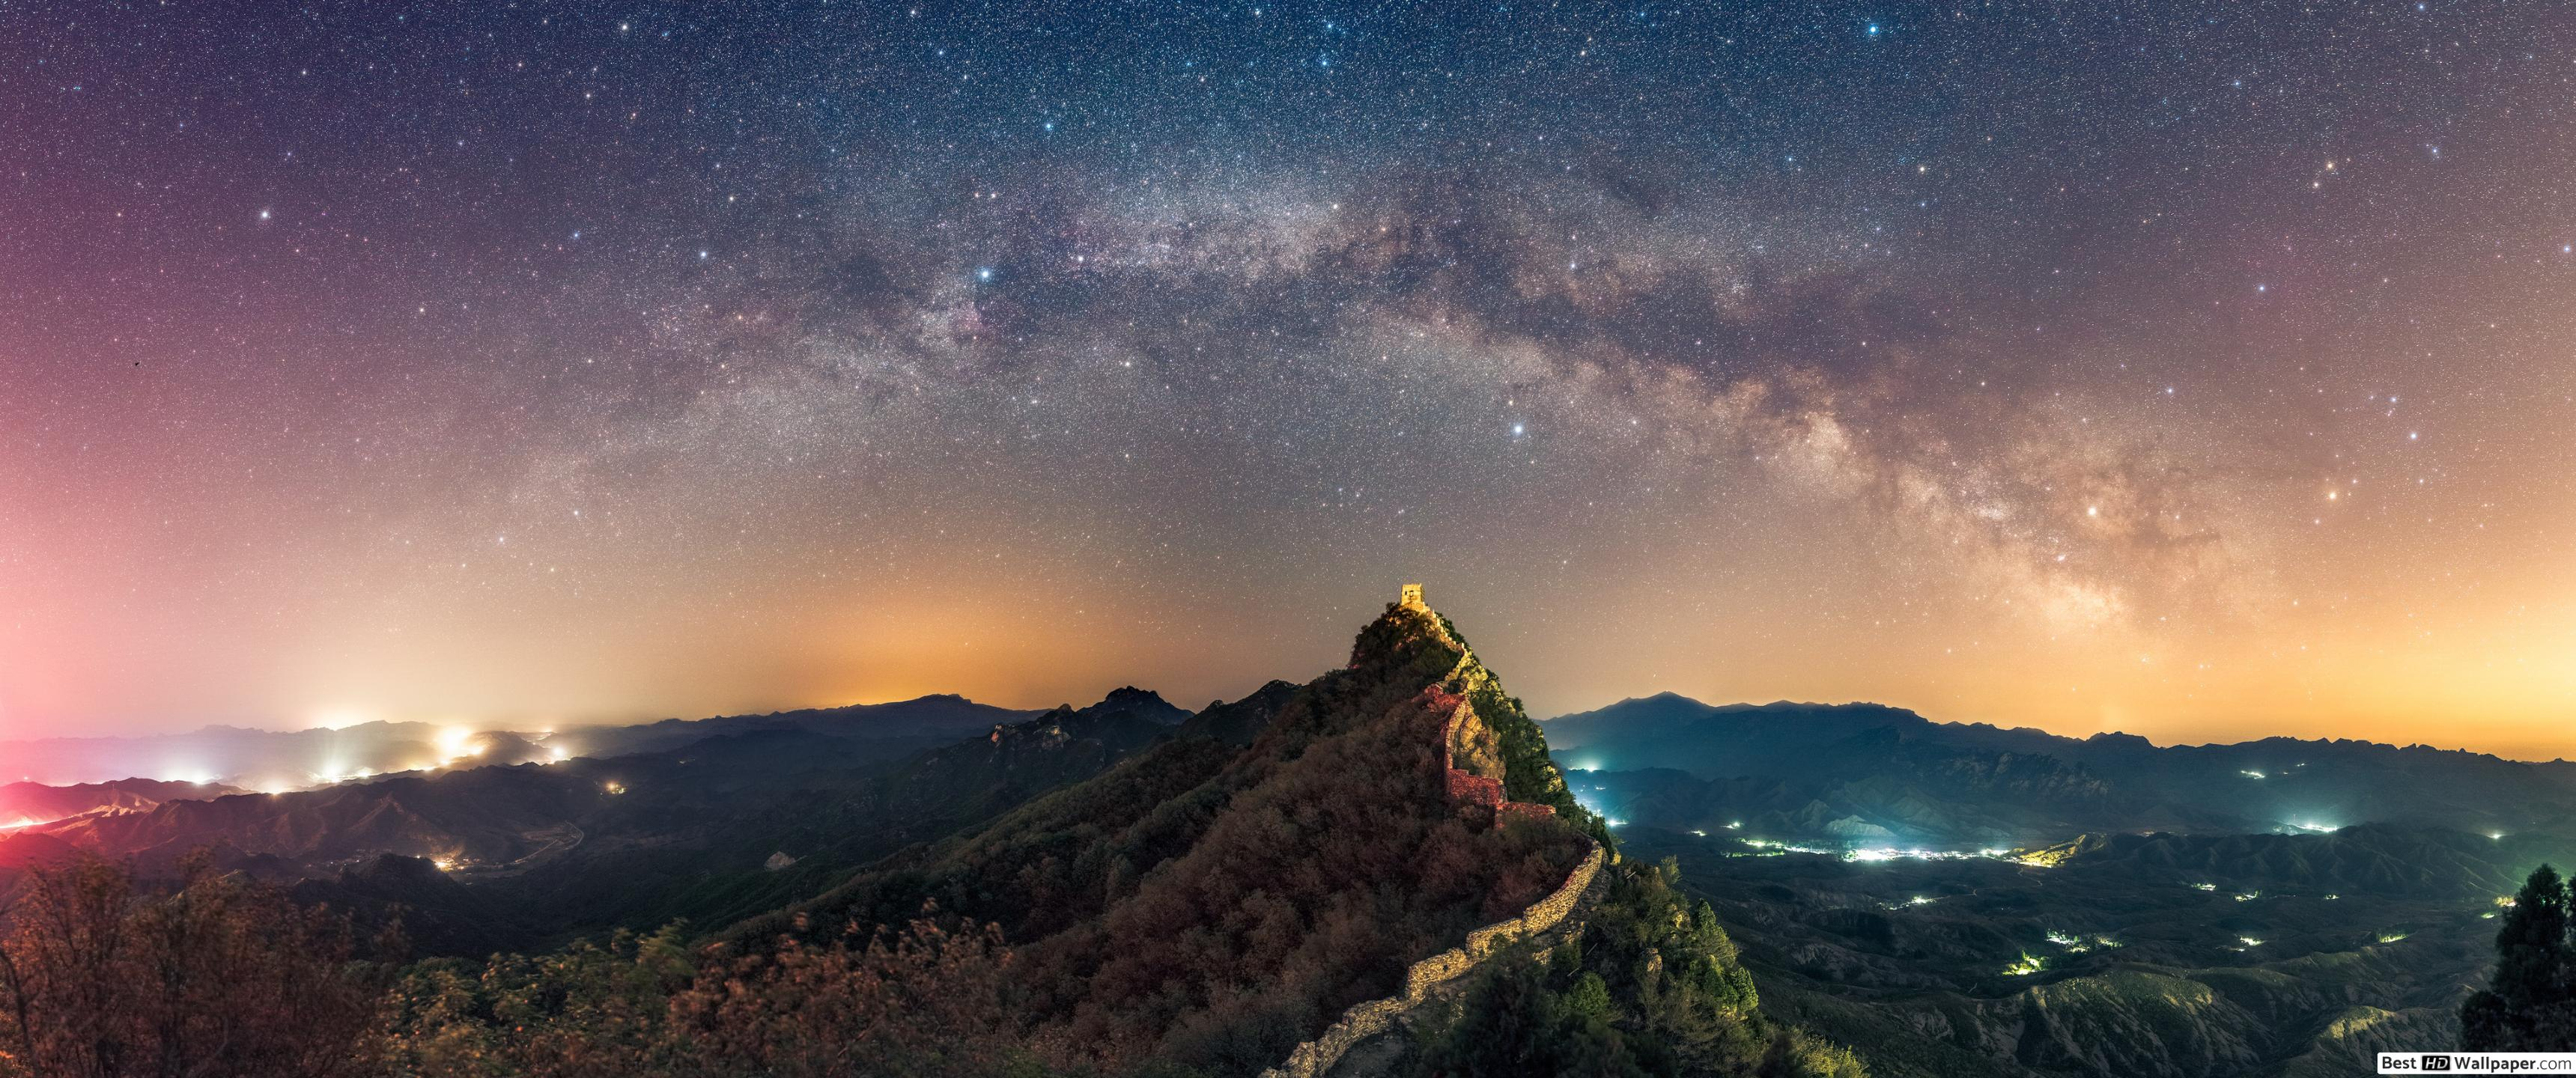 Starry night at the Great Wall of China HD wallpaper download 3440x1440